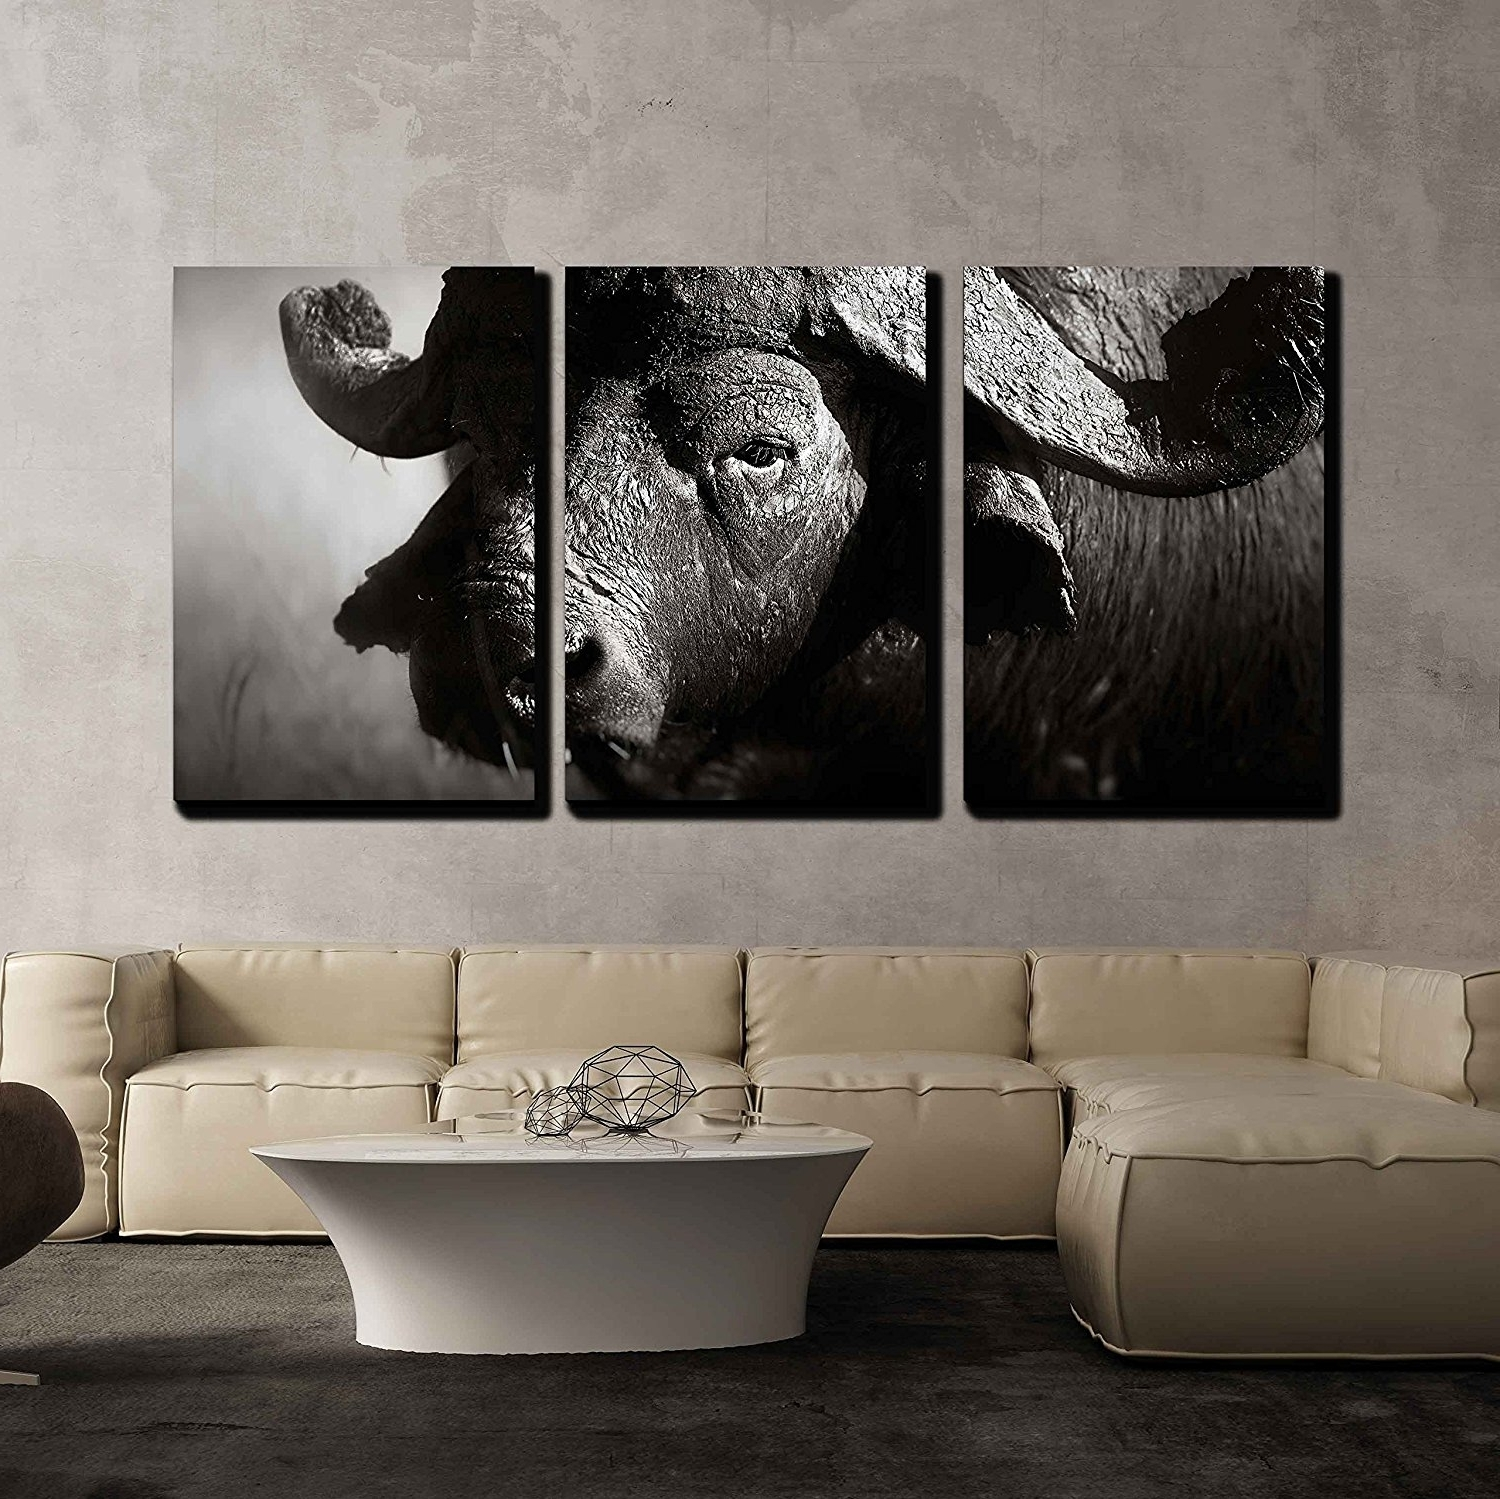 Wall26 – Art Prints – Framed Art – Canvas Prints – Greeting Inside Current South Africa Framed Art Prints (View 7 of 15)